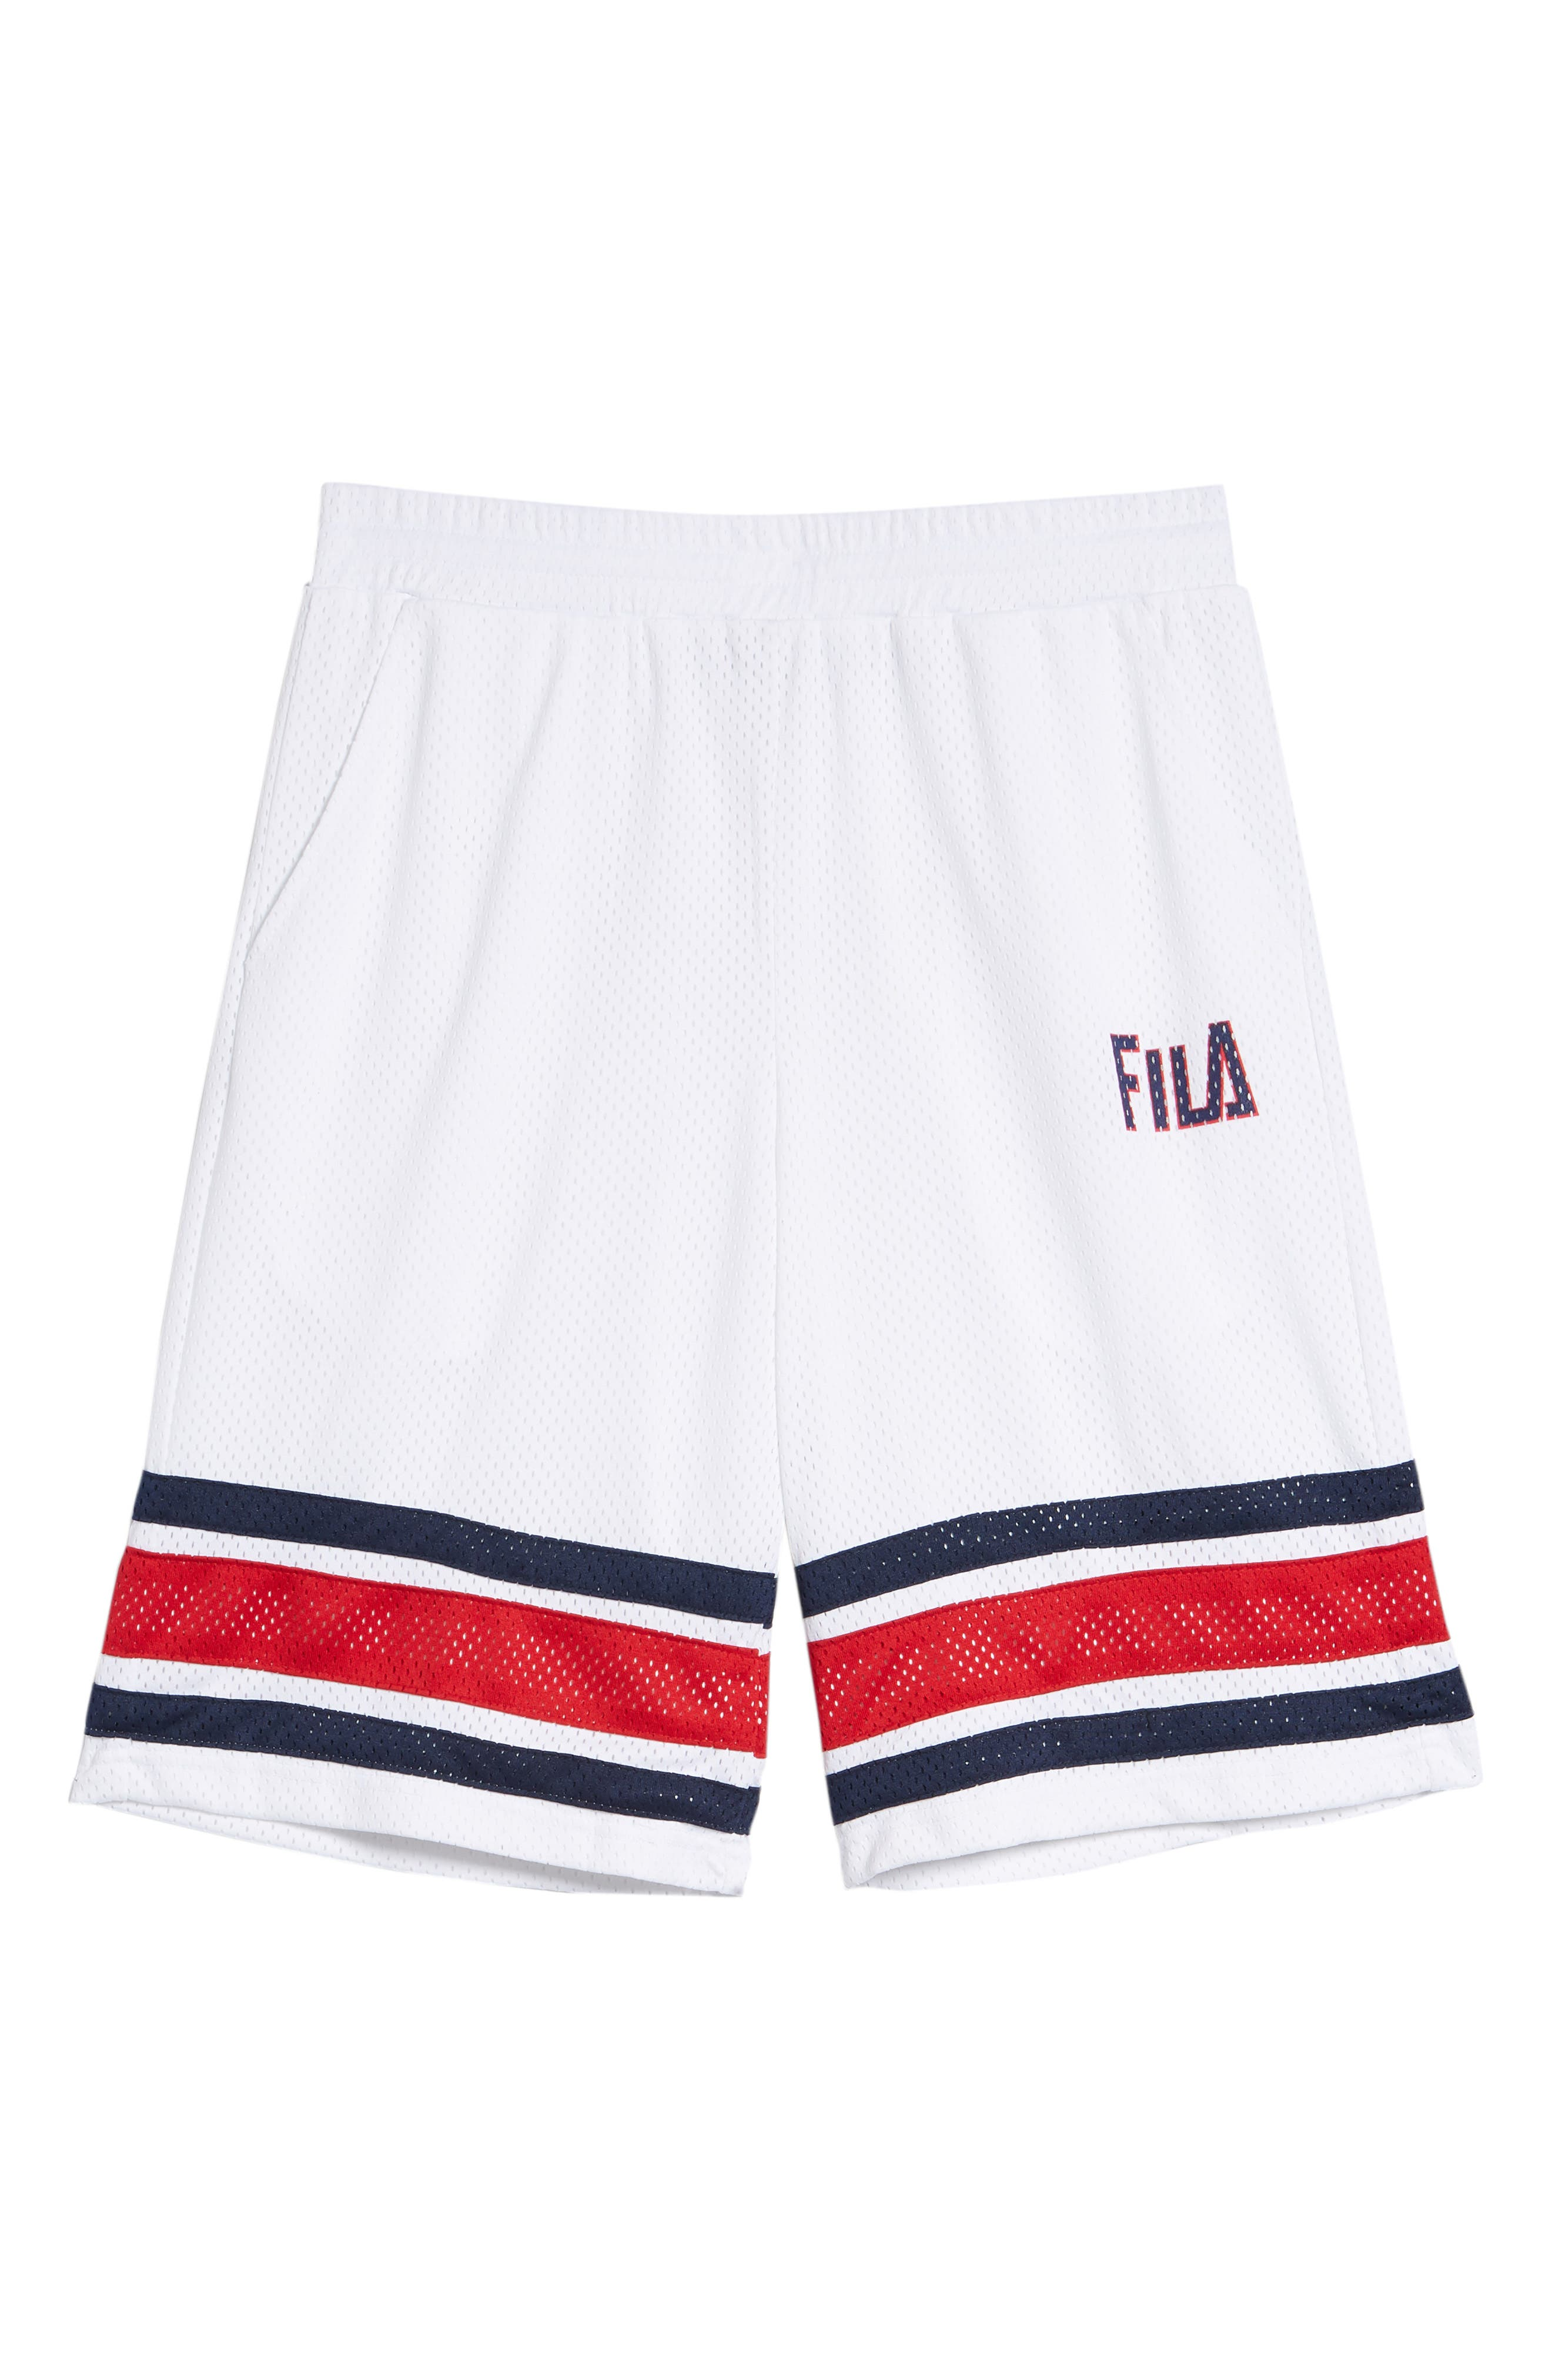 Parker Basketball Shorts,                             Alternate thumbnail 6, color,                             White/ Peacoat/ Chinese Red